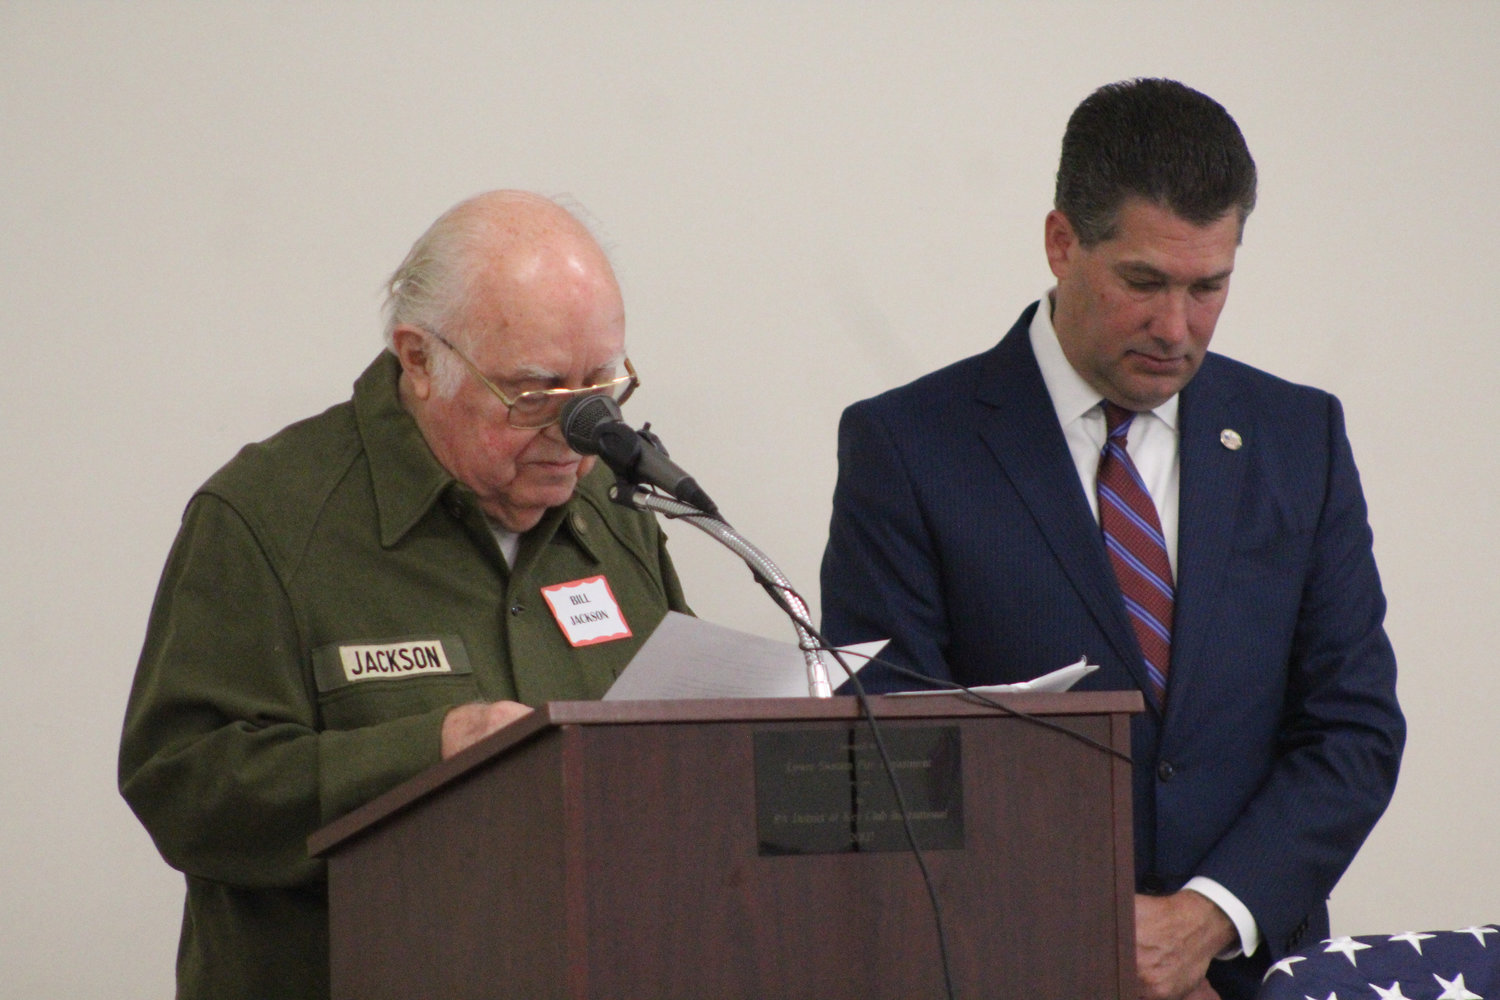 Bill Jackson leads the invocation during Rep. Tom Mehaffie's Veterans Breakfast at the Lower Swatara Fire Hall Nov. 8.